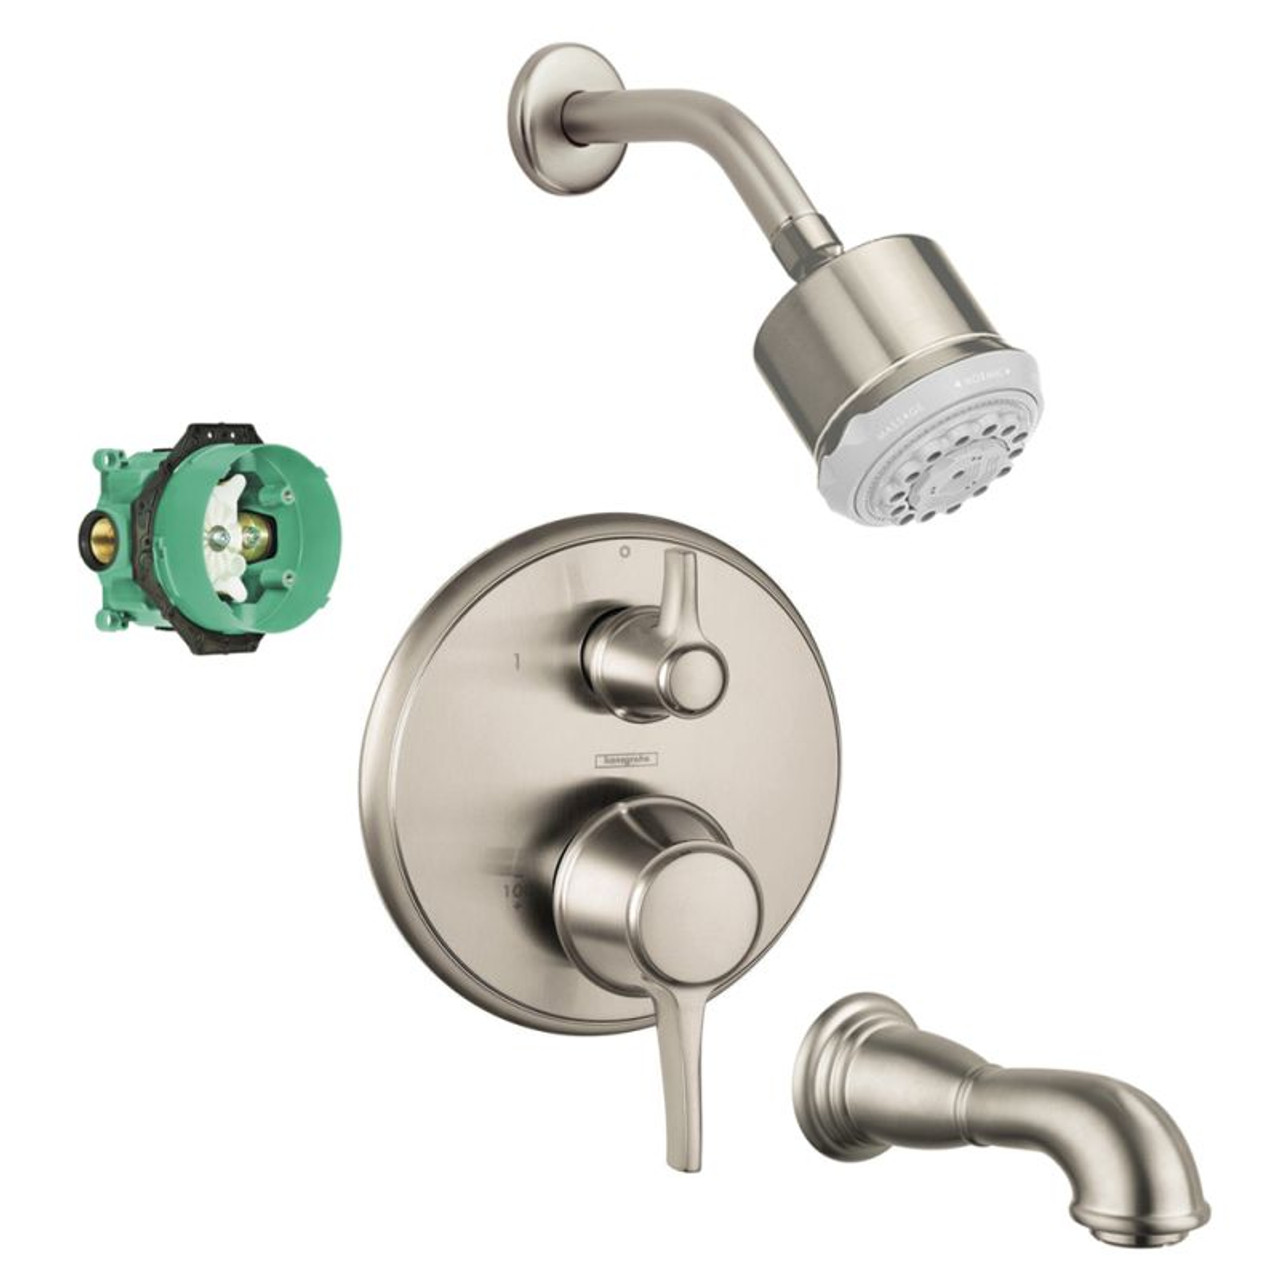 Hansgrohe Kst04449 28496 88bn Clubmaster Shower Faucet Kit With Tub Spout Pvb Trim Diverter And Rough In